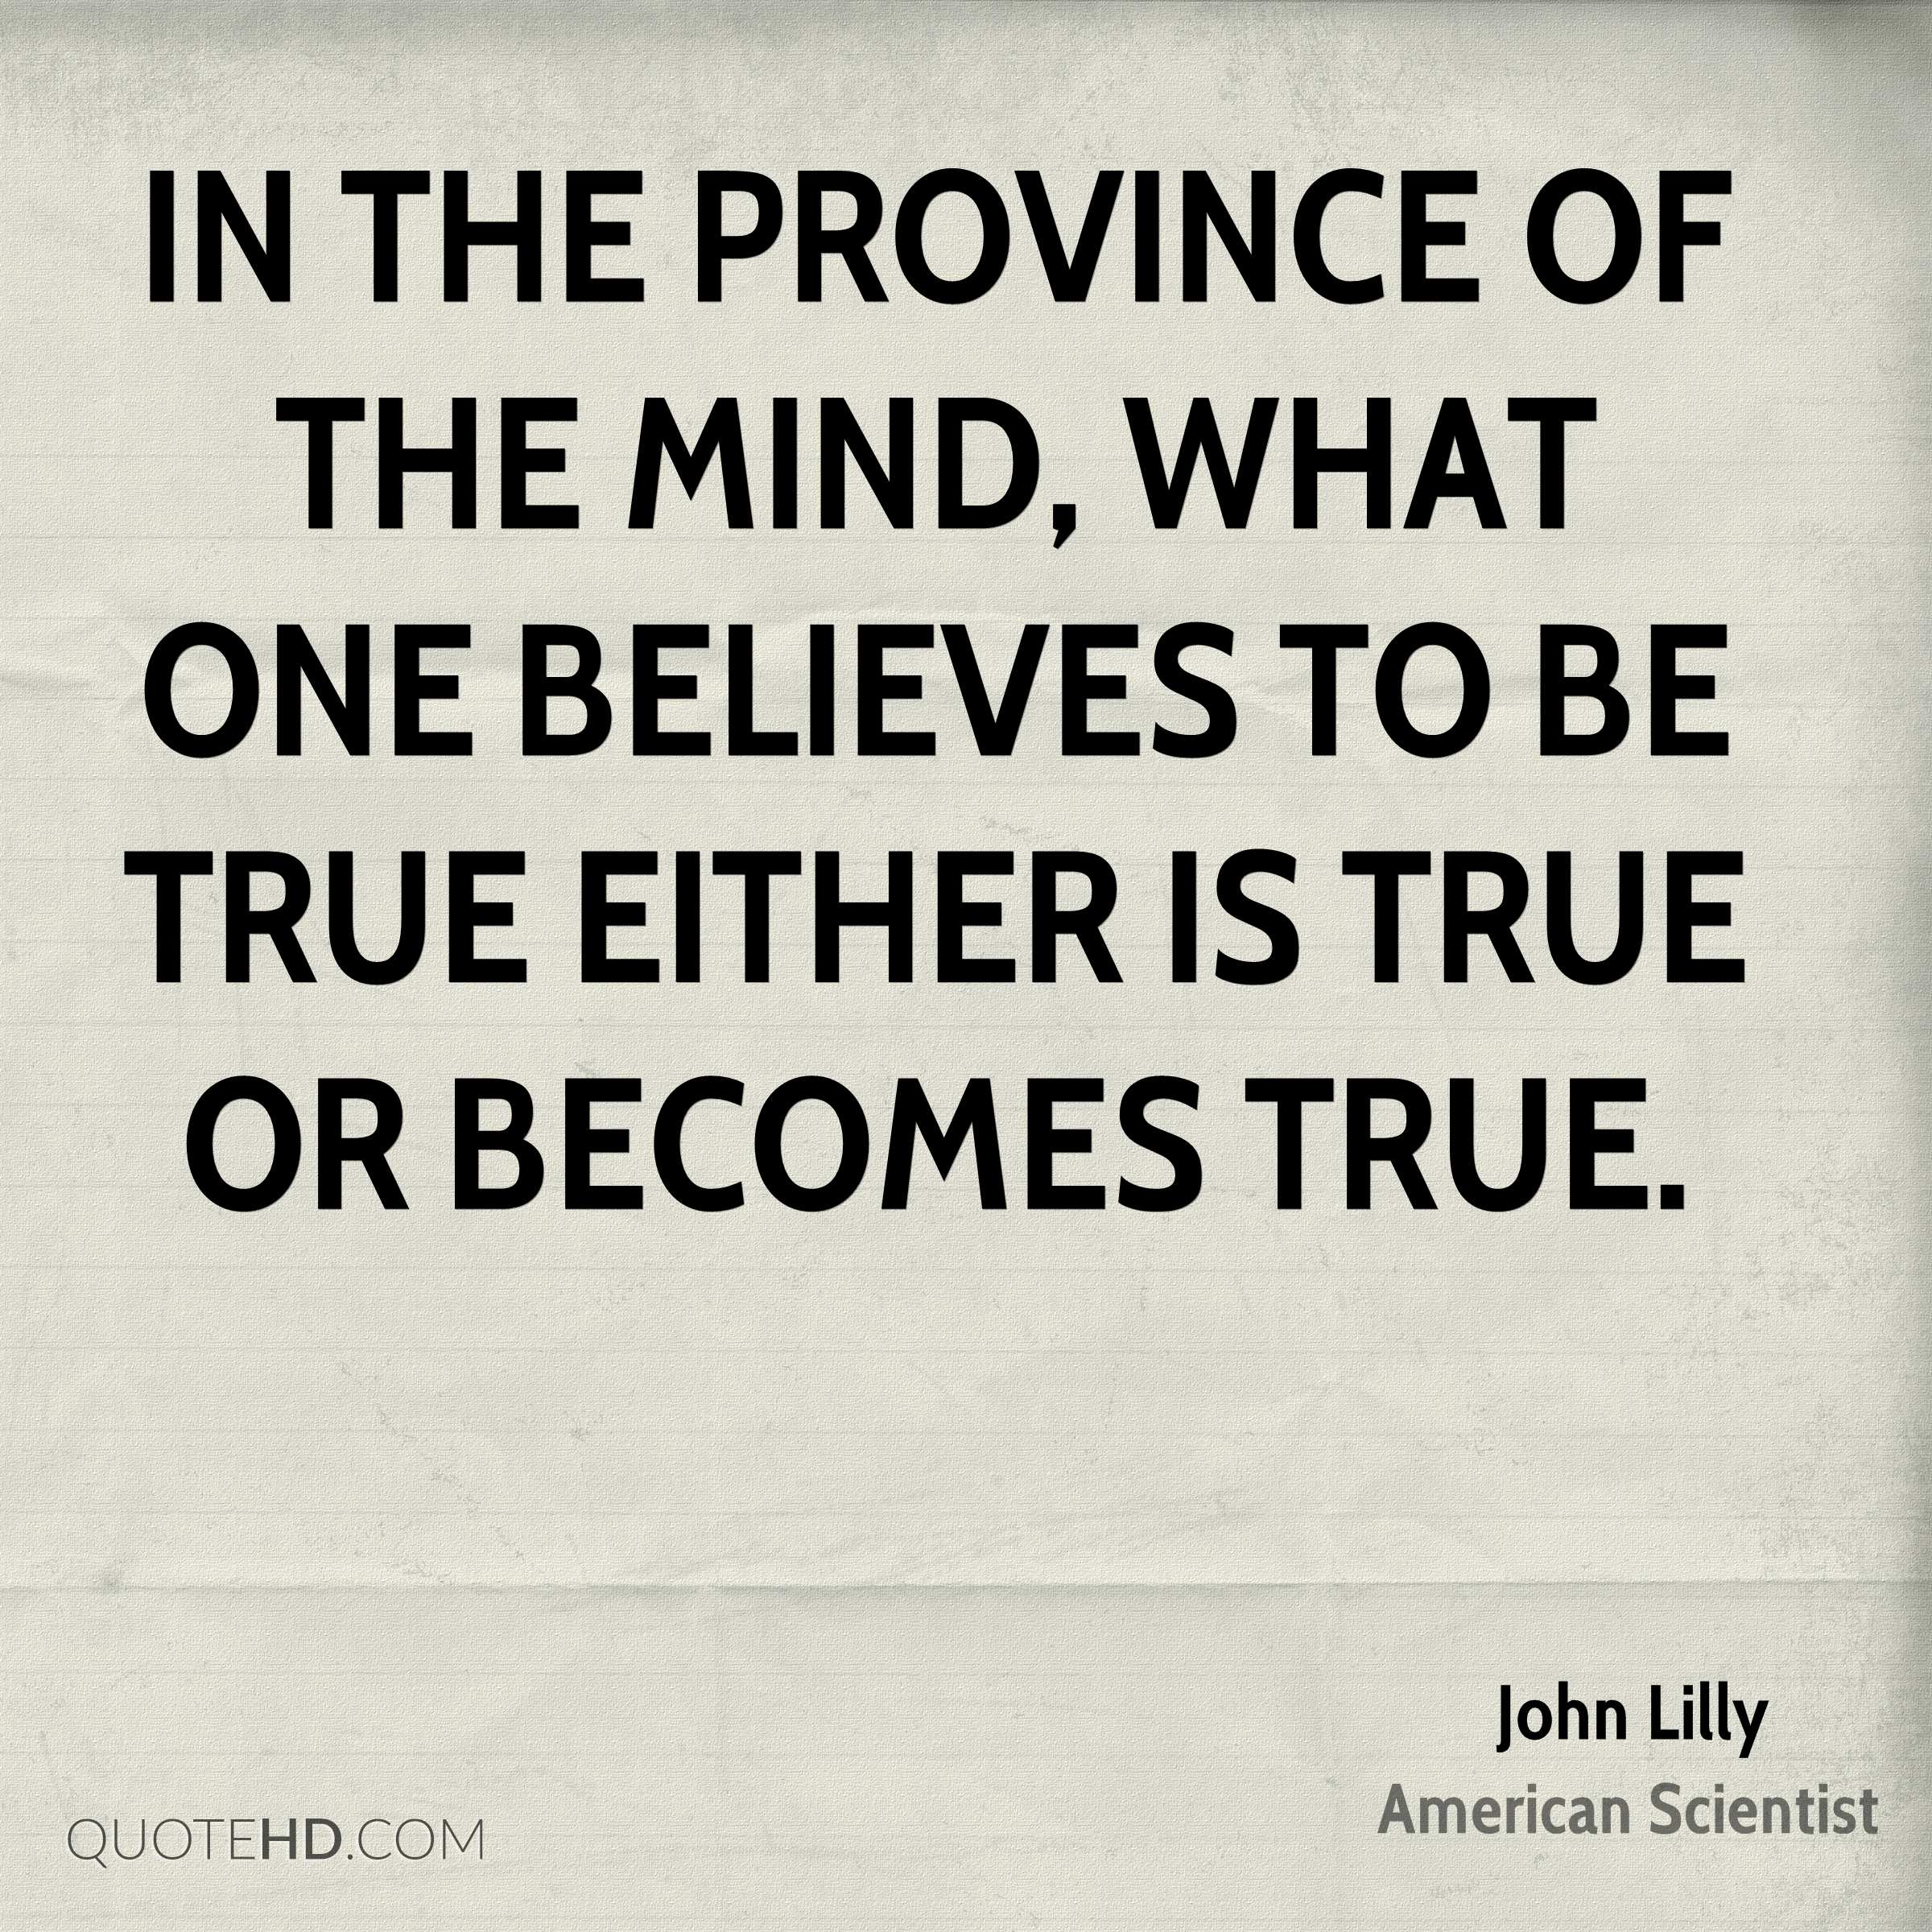 In the province of the mind, what one believes to be true either is true or becomes true.